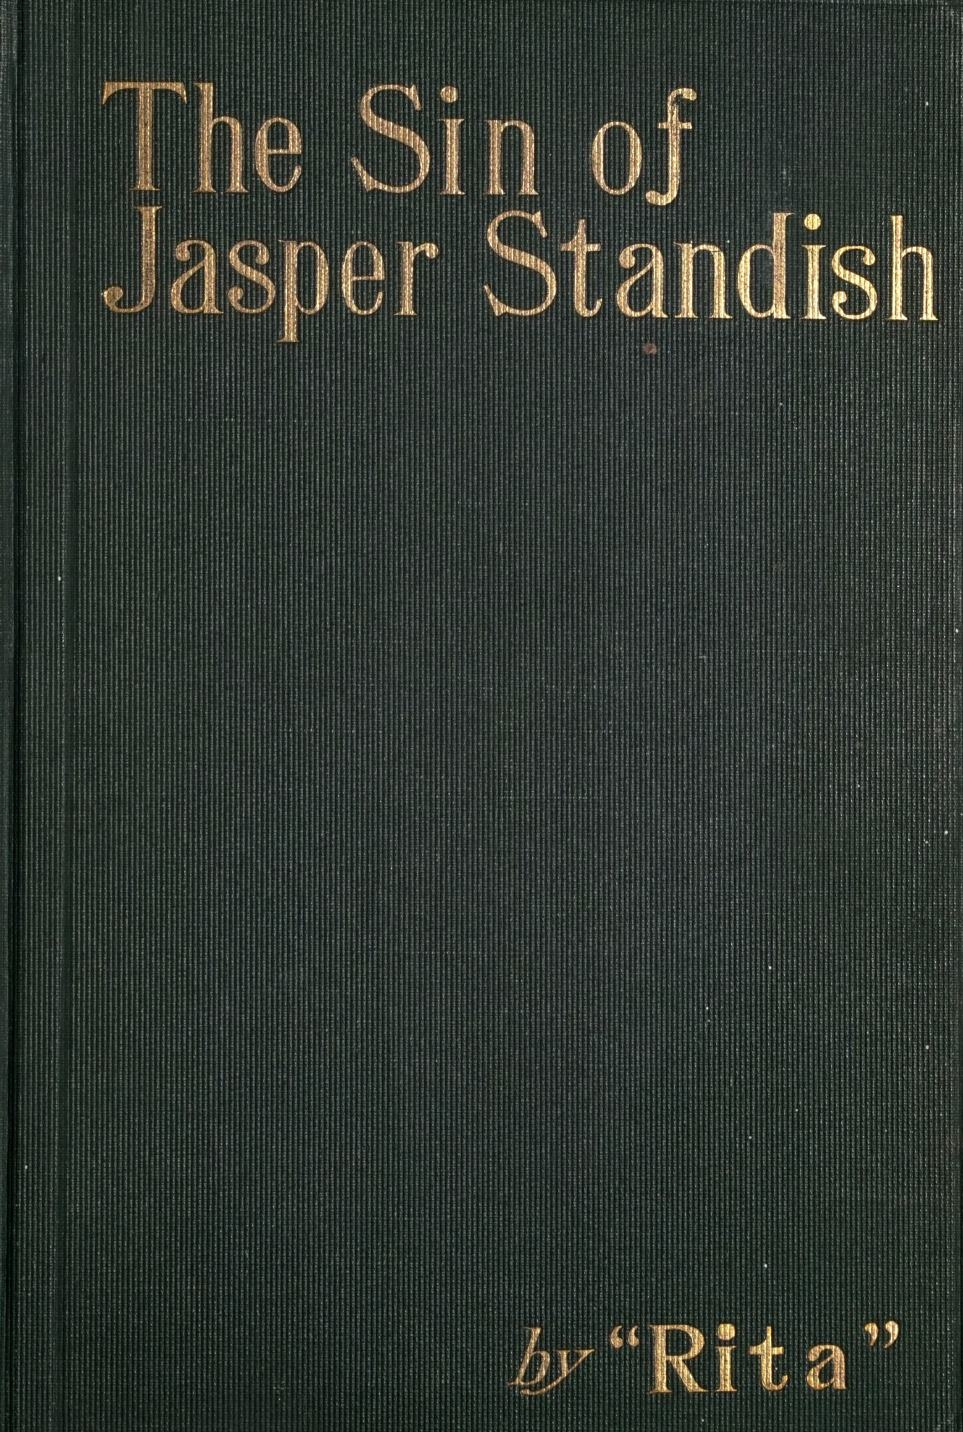 The Sin of Jasper Standish, by